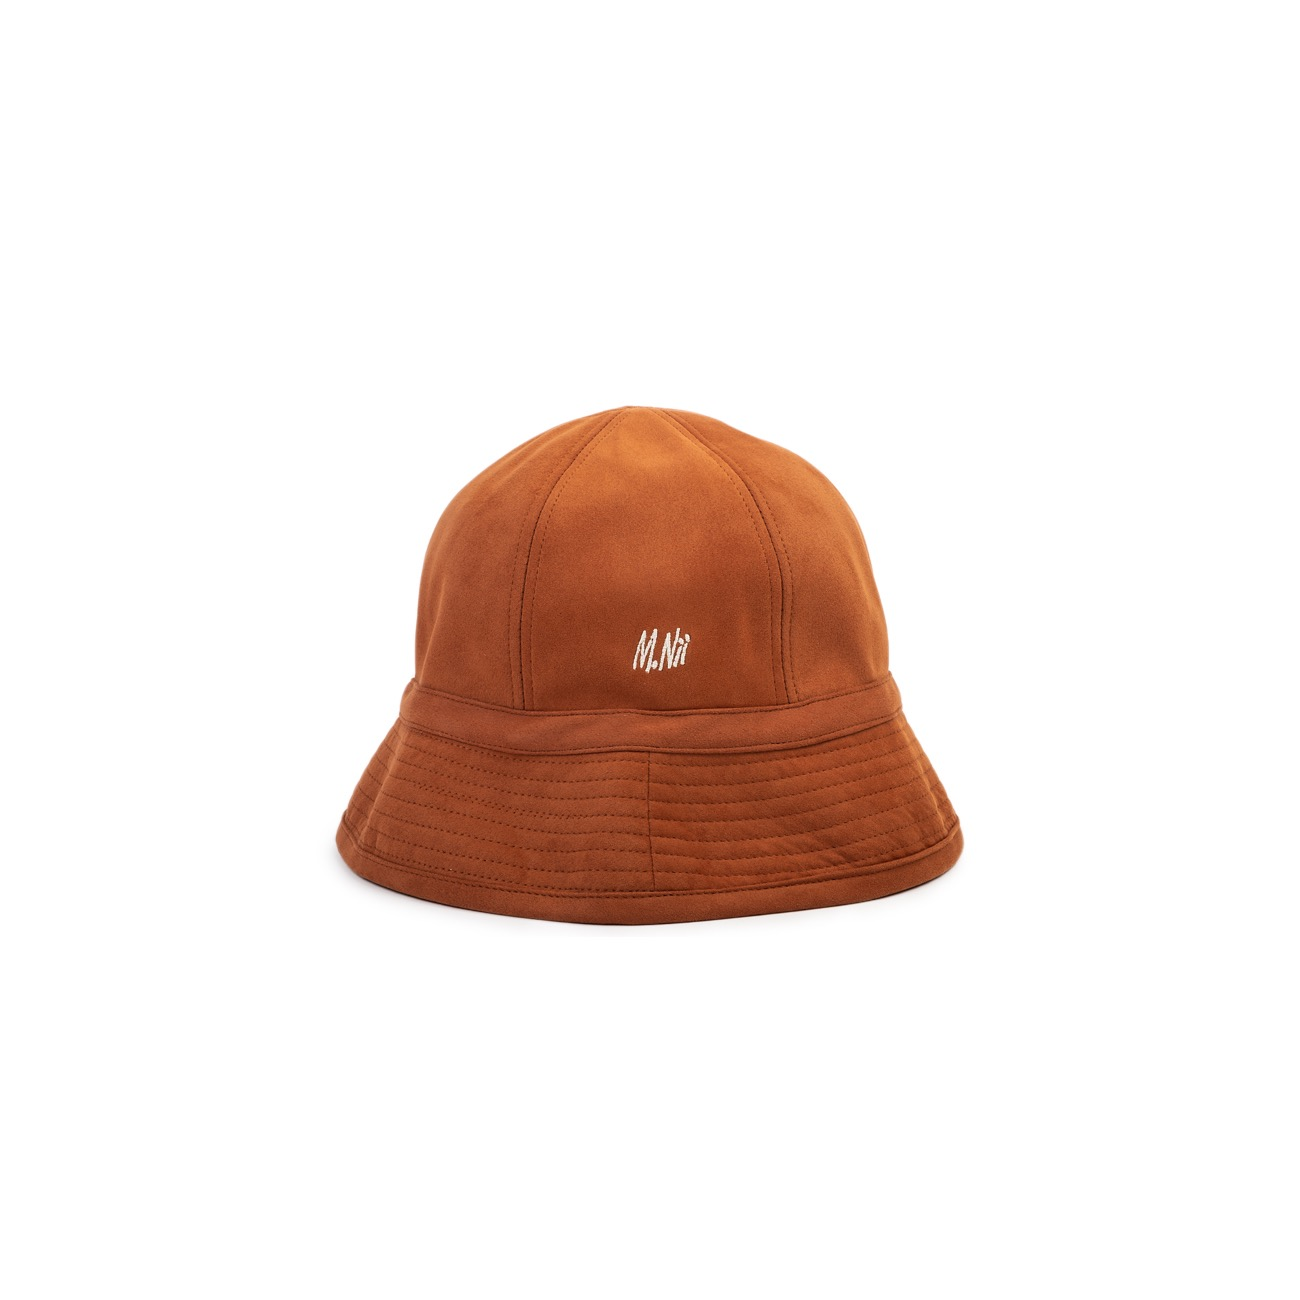 M.Nii French Bucket